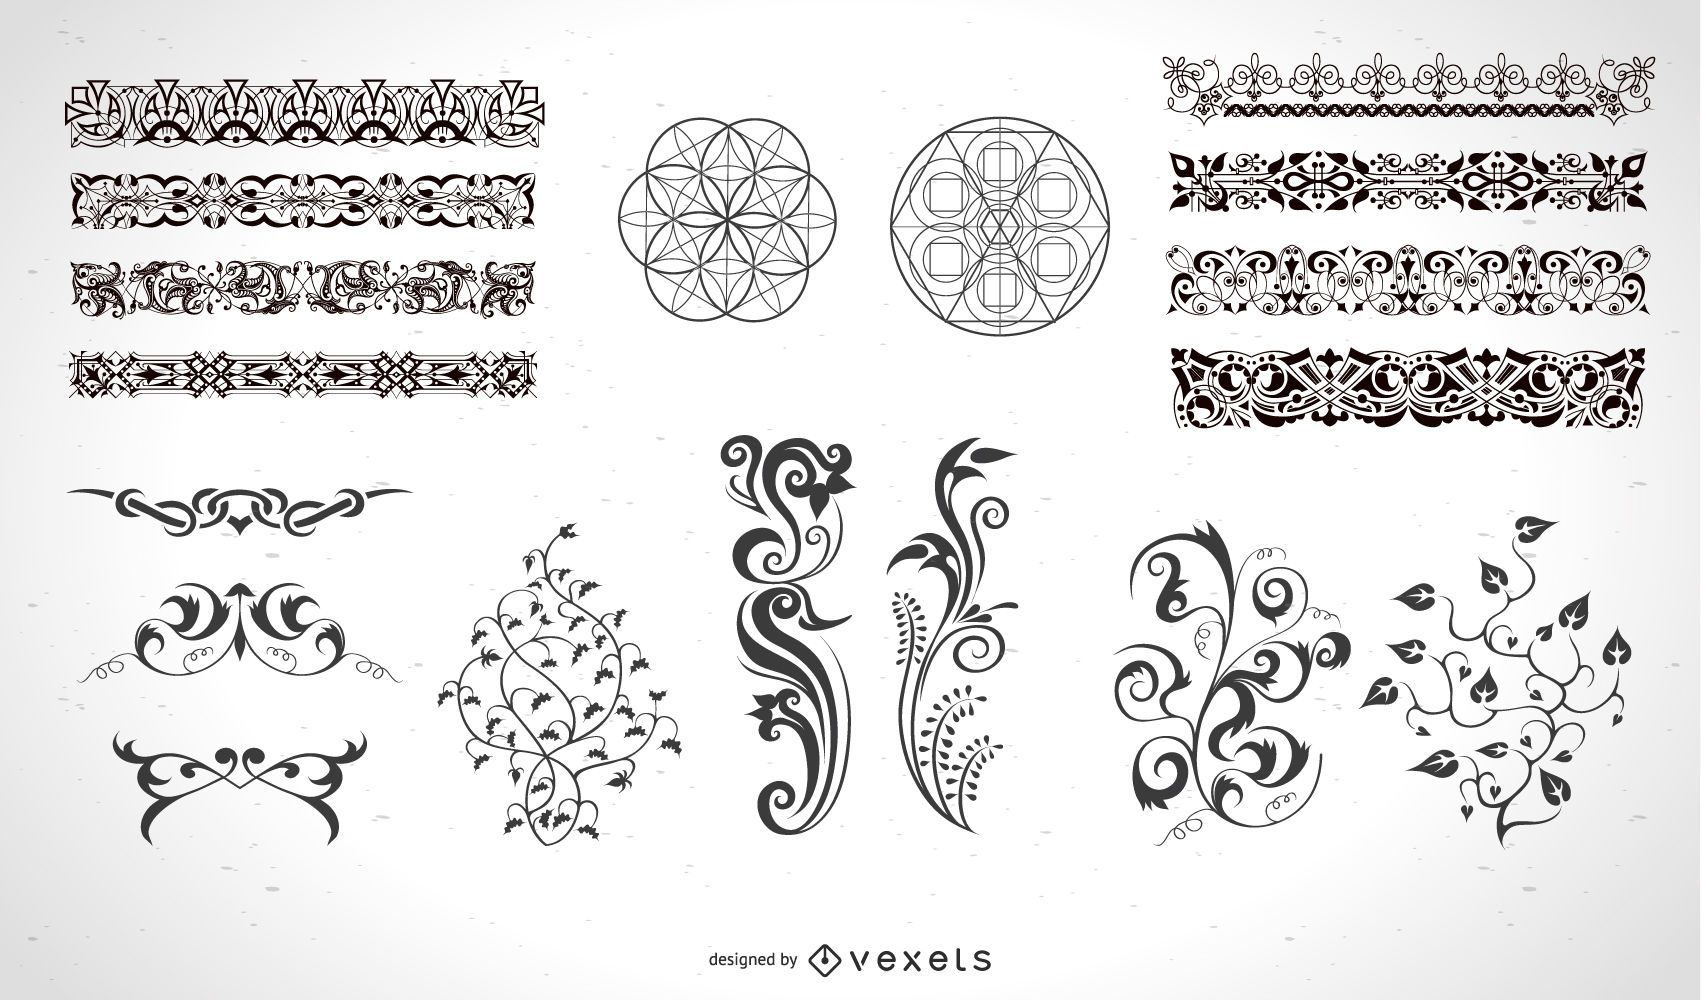 Calligraphic elements and page decorations